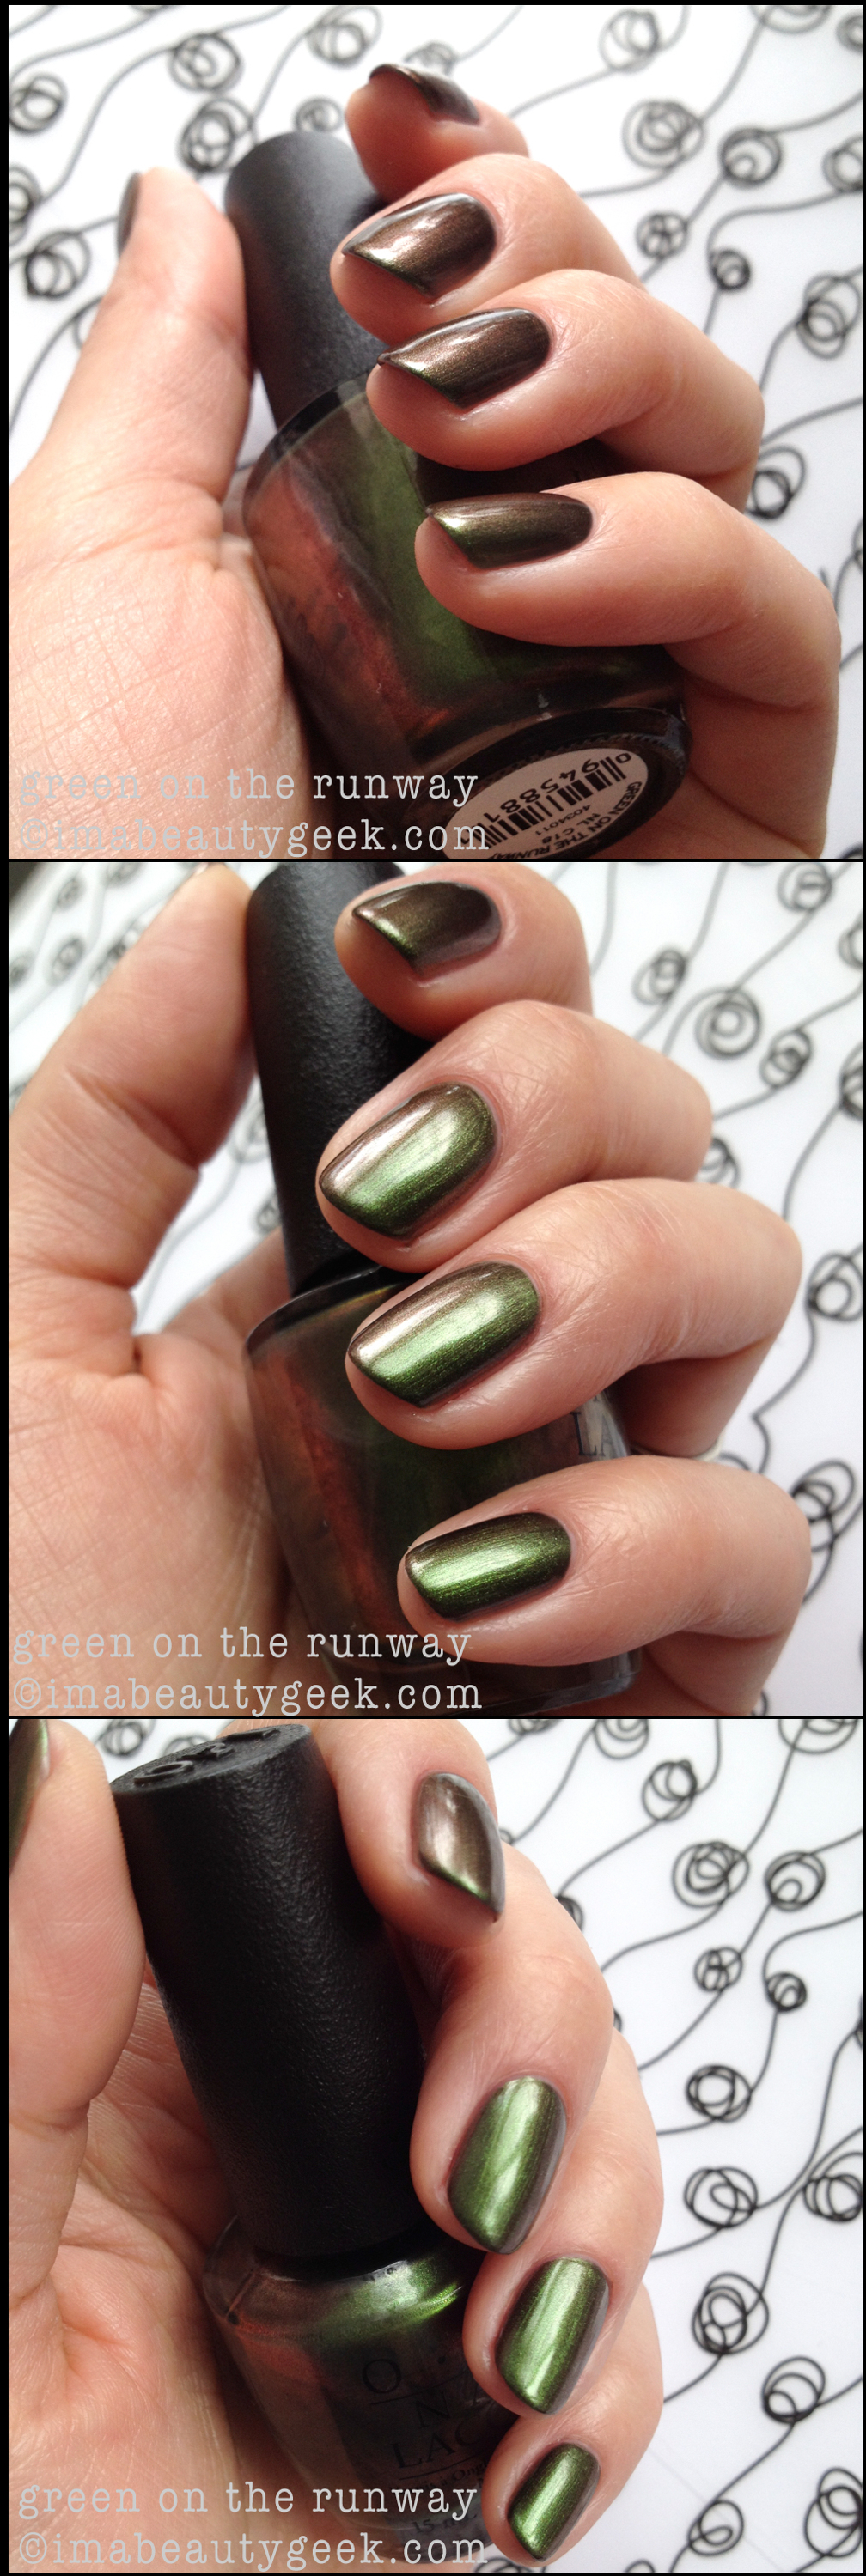 OPI Green on the Runway duochrome. OPI Coca-Cola Collection Swatches @ imabeautygeek.com